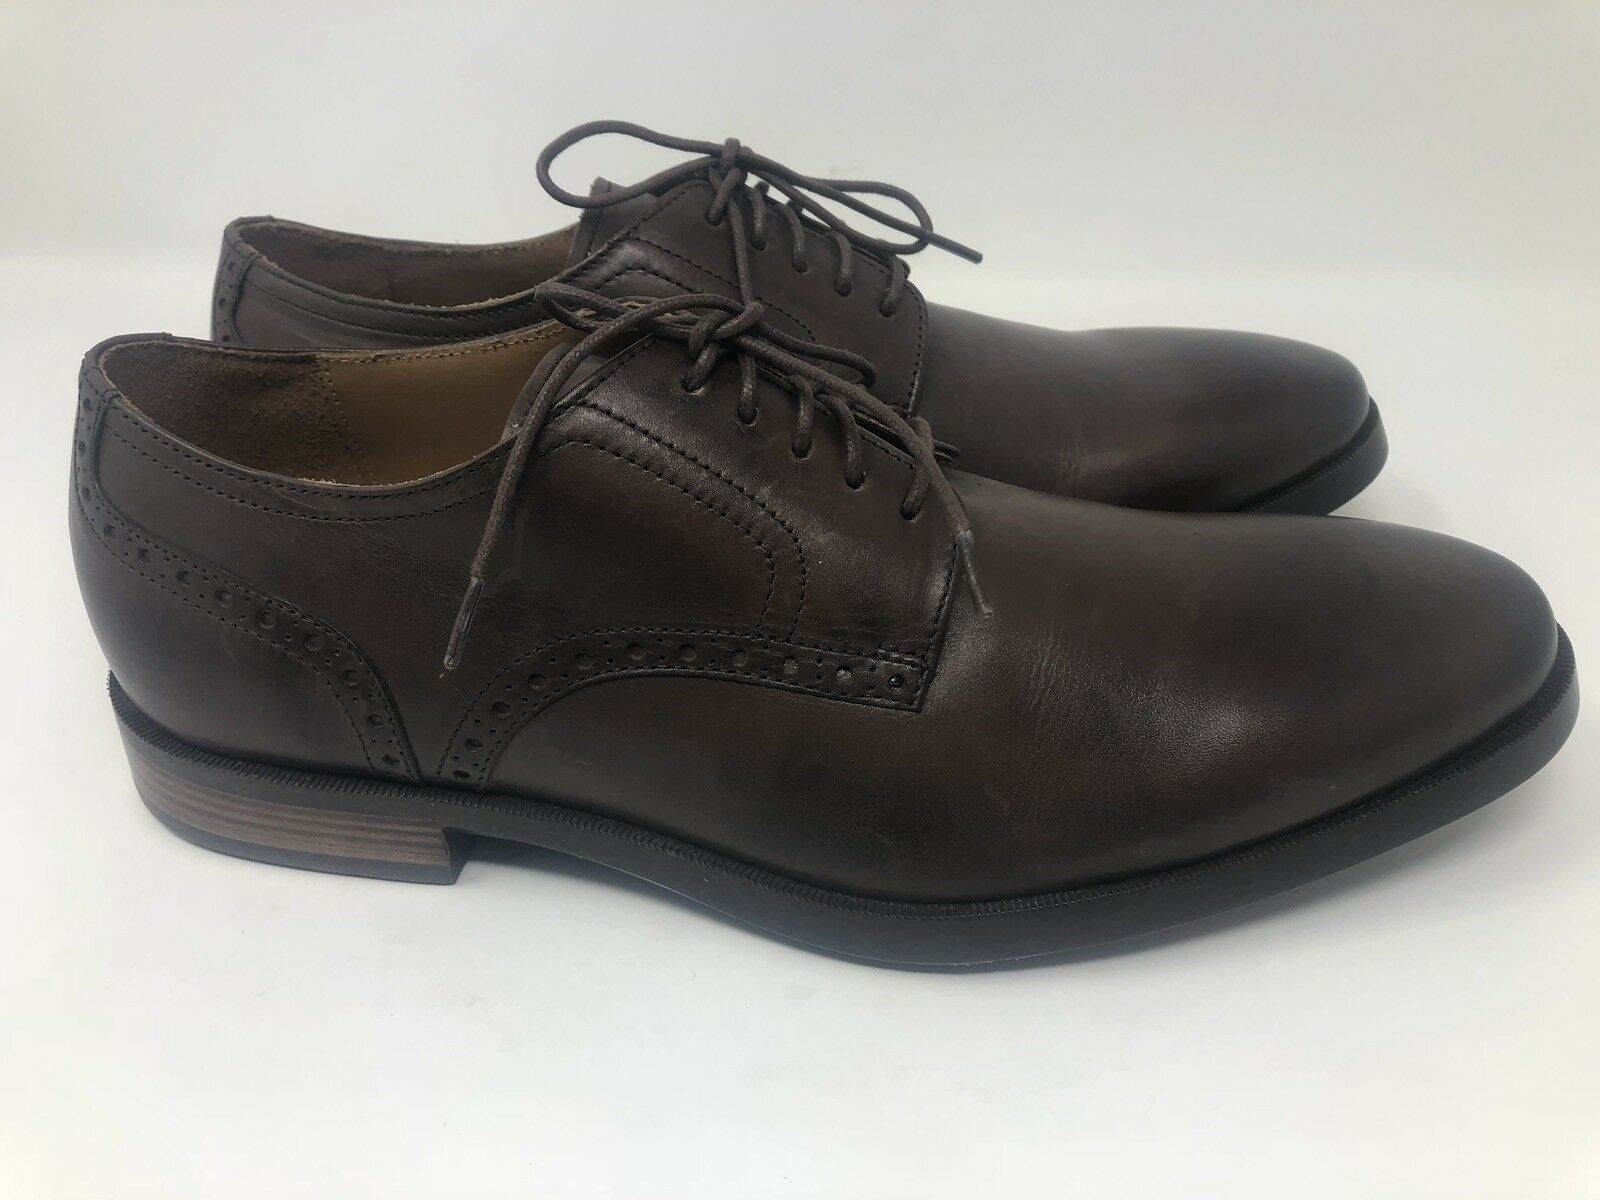 New New New MENS COLE HAAN GRAND OS PLAIN TOE DRESS OXFORDS SHOES 8.5 M 21b3fd